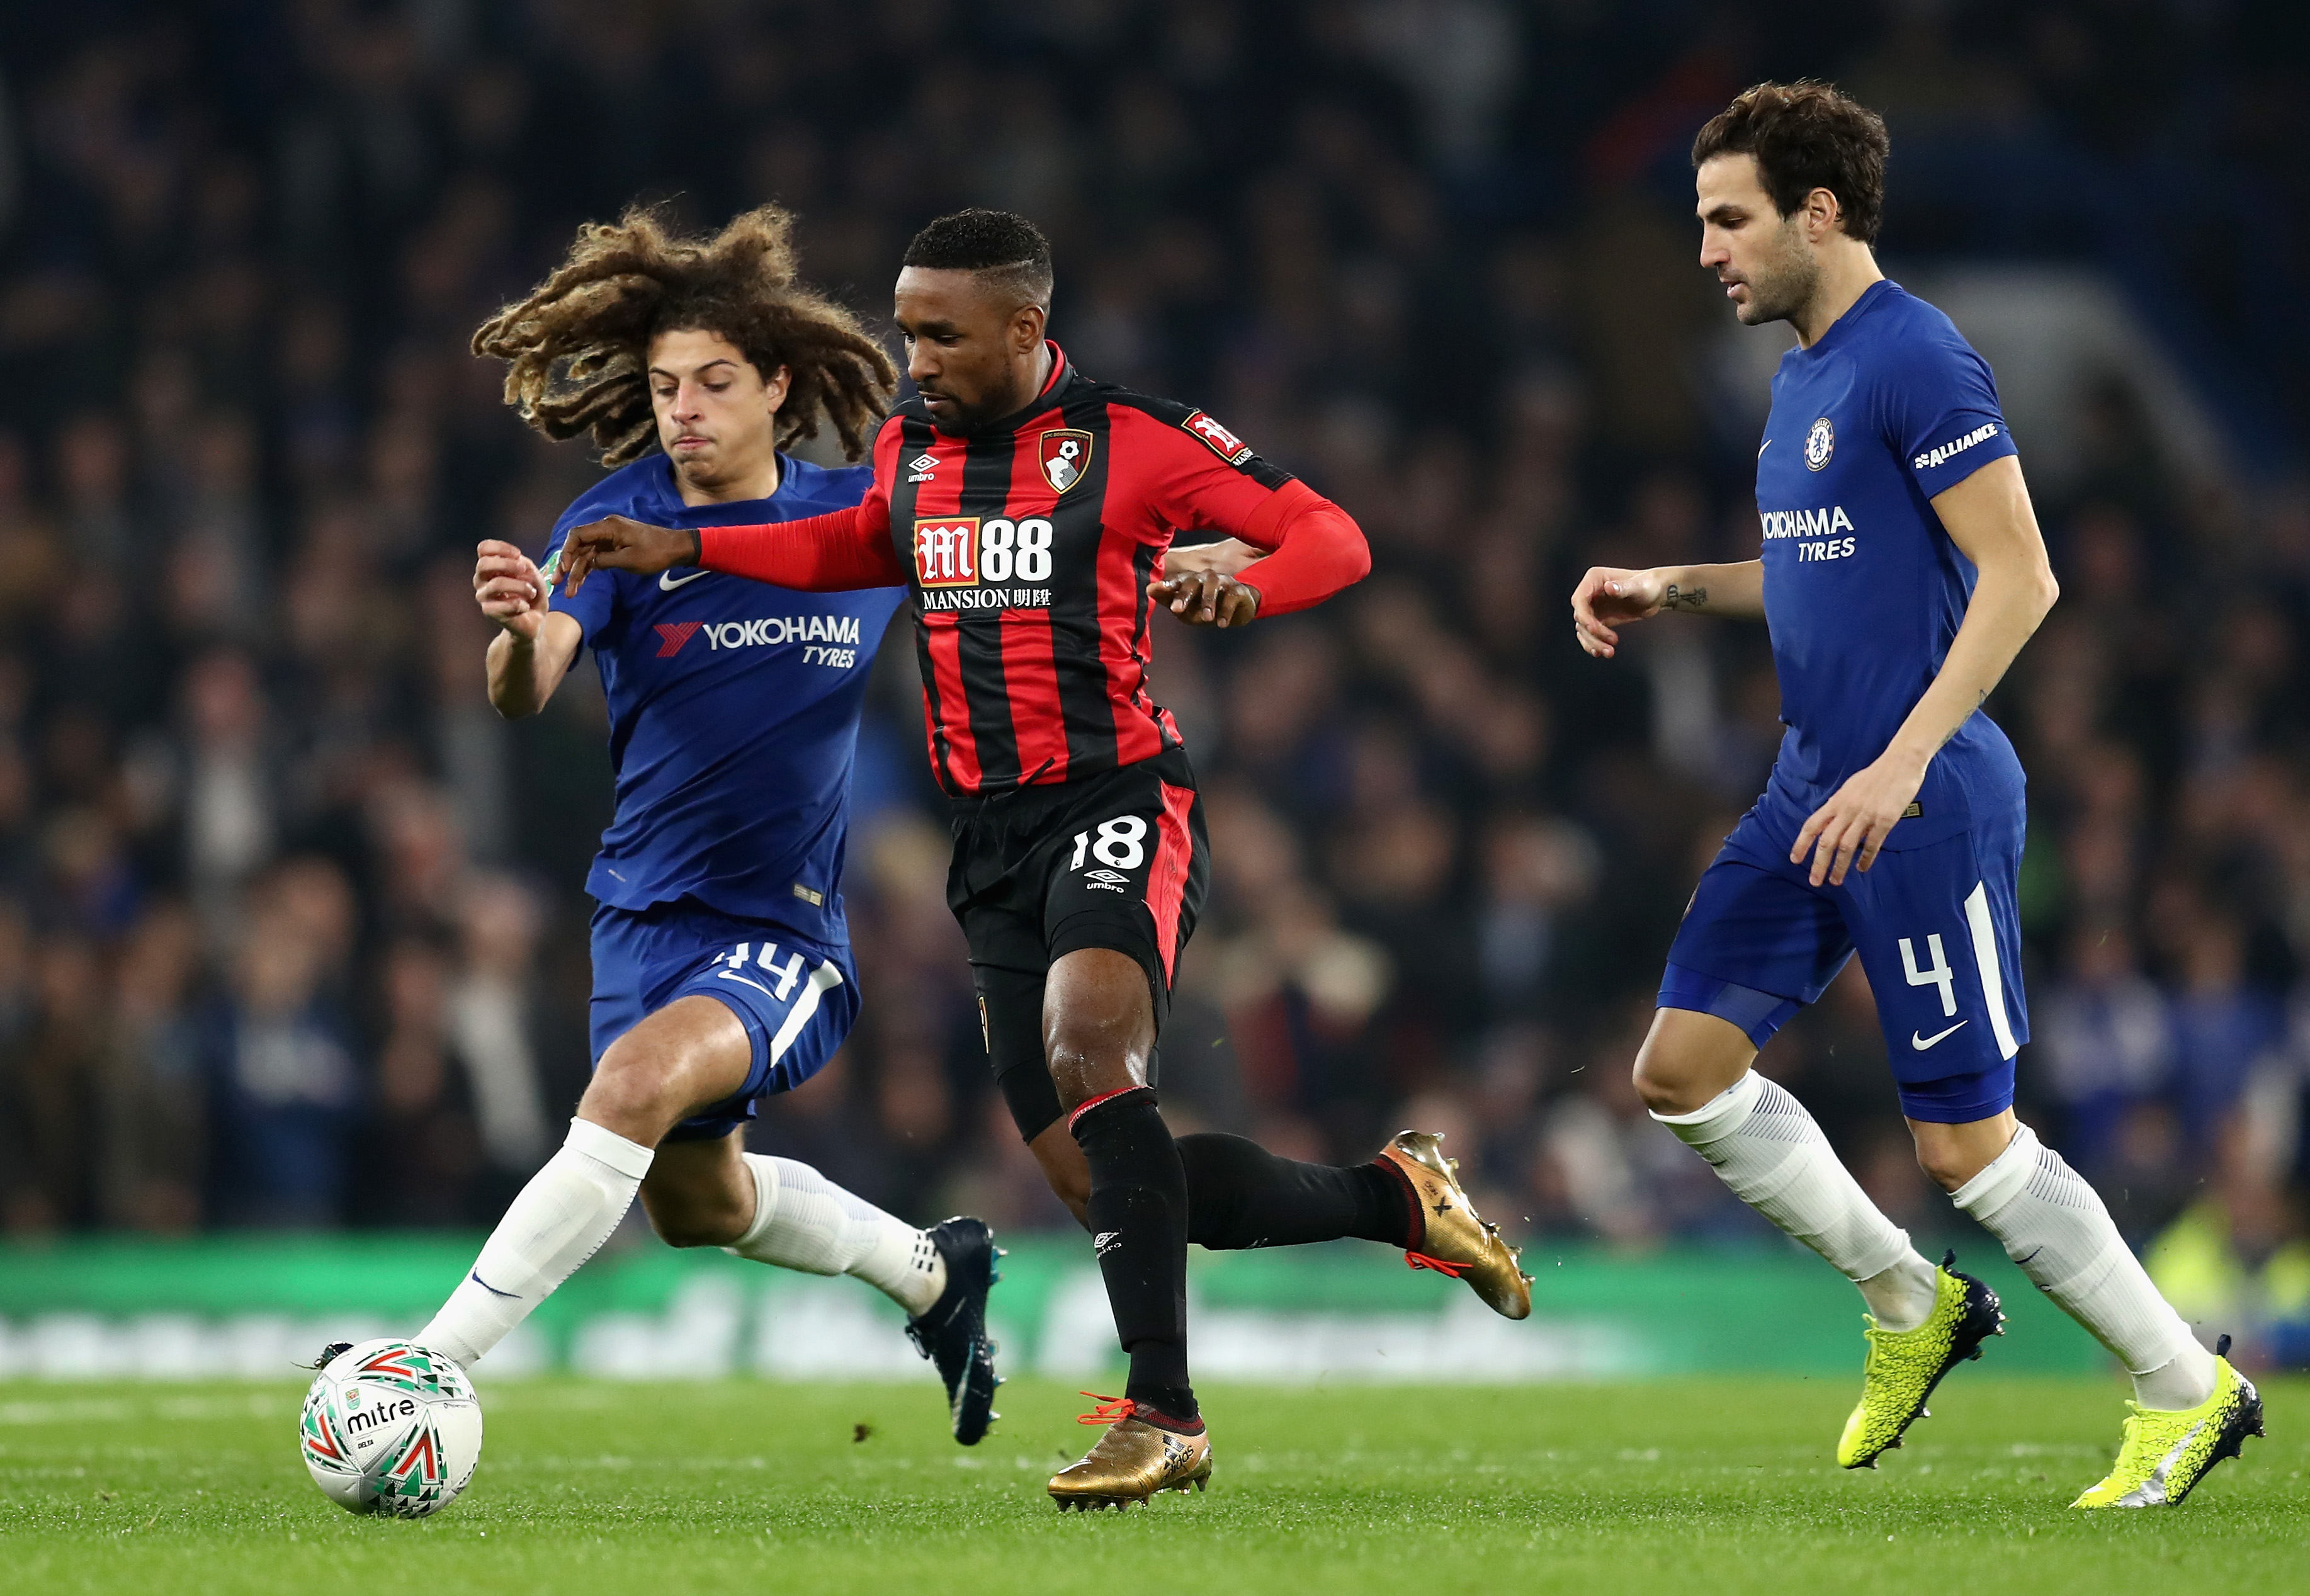 Carabao Cup: Chelsea join Arsenal, Manchester City in semi-final